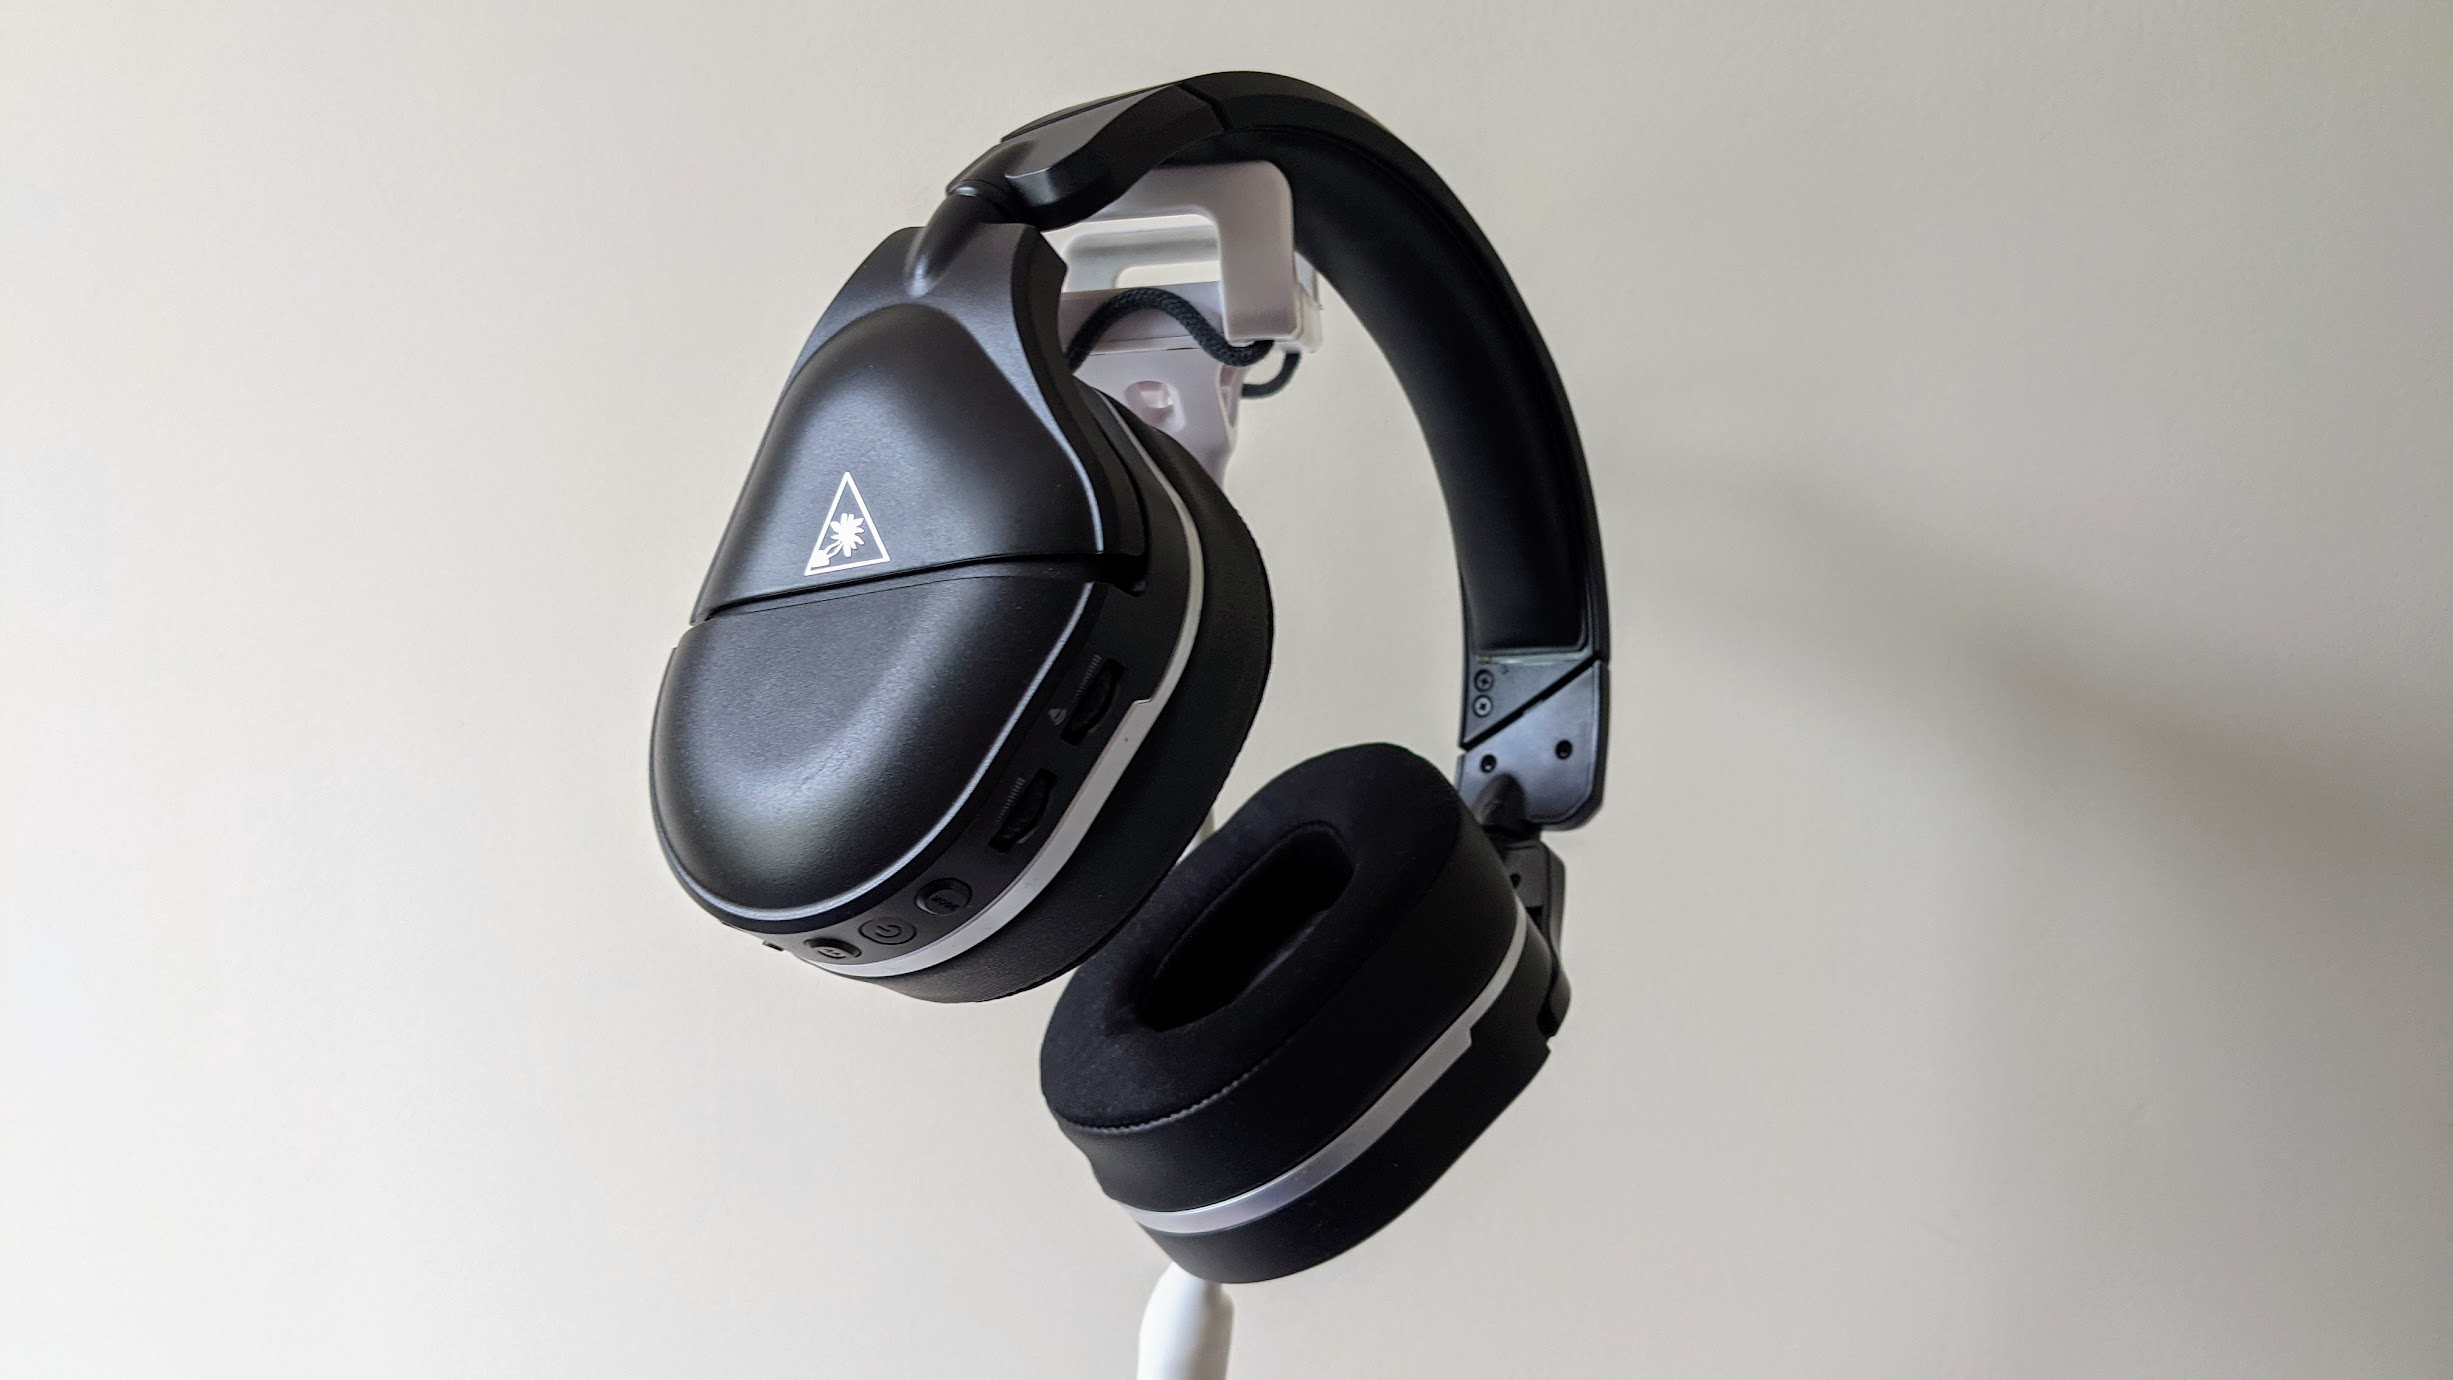 The Turtle Beach Stealth 700 Gen 2 design is simple and sophisticated